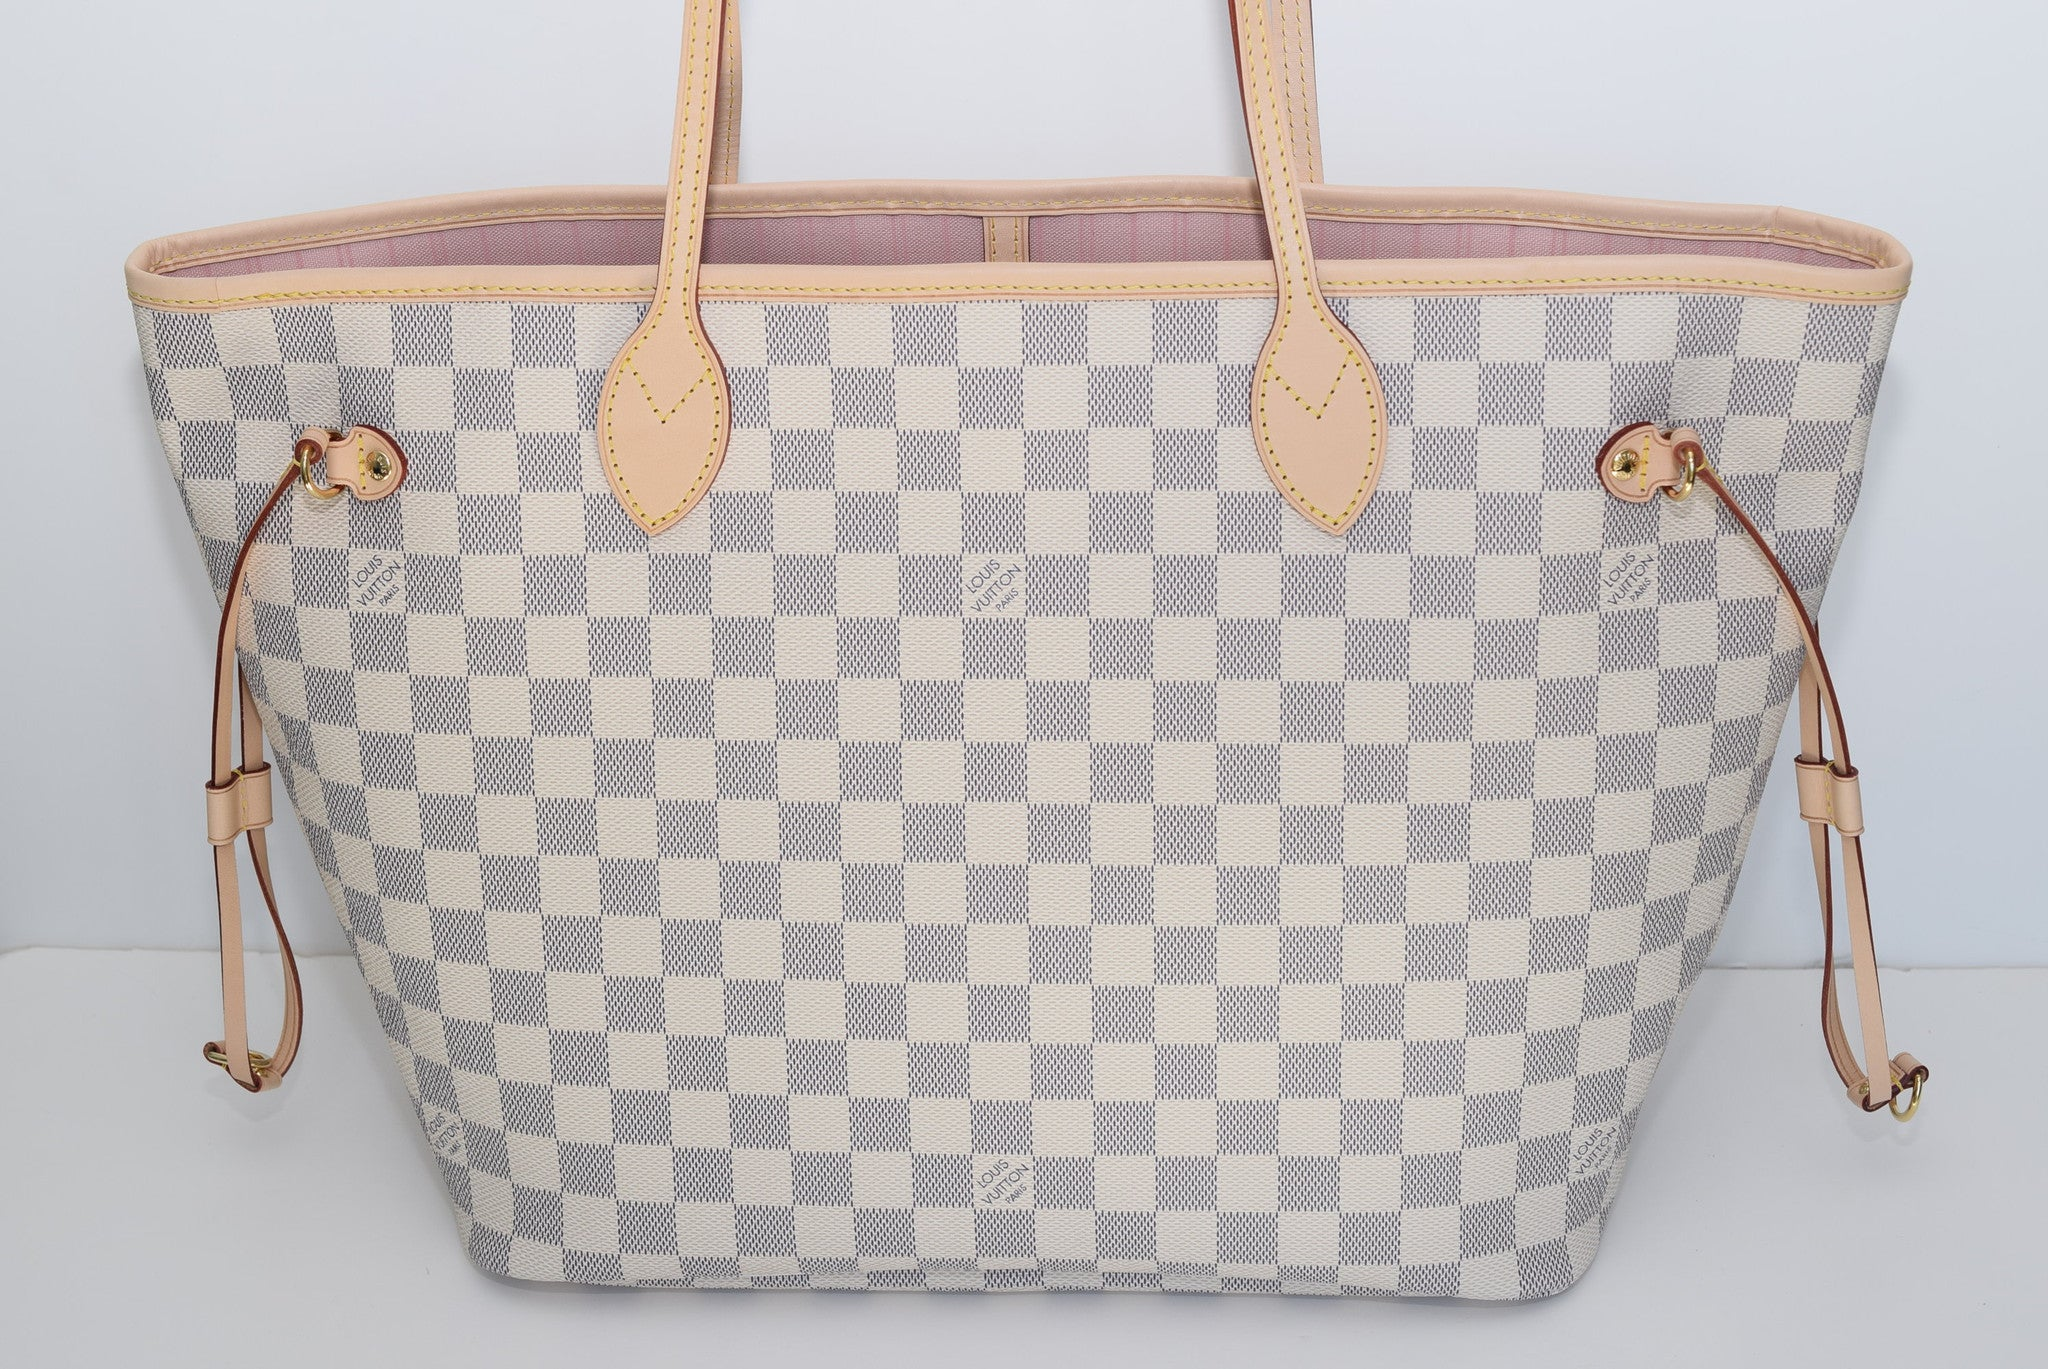 cb06fcb3798c LOUIS VUITTON Brand New!!! Neverfull Mm In - Date Code Sr1176 - Made I -  Timeless Gallery